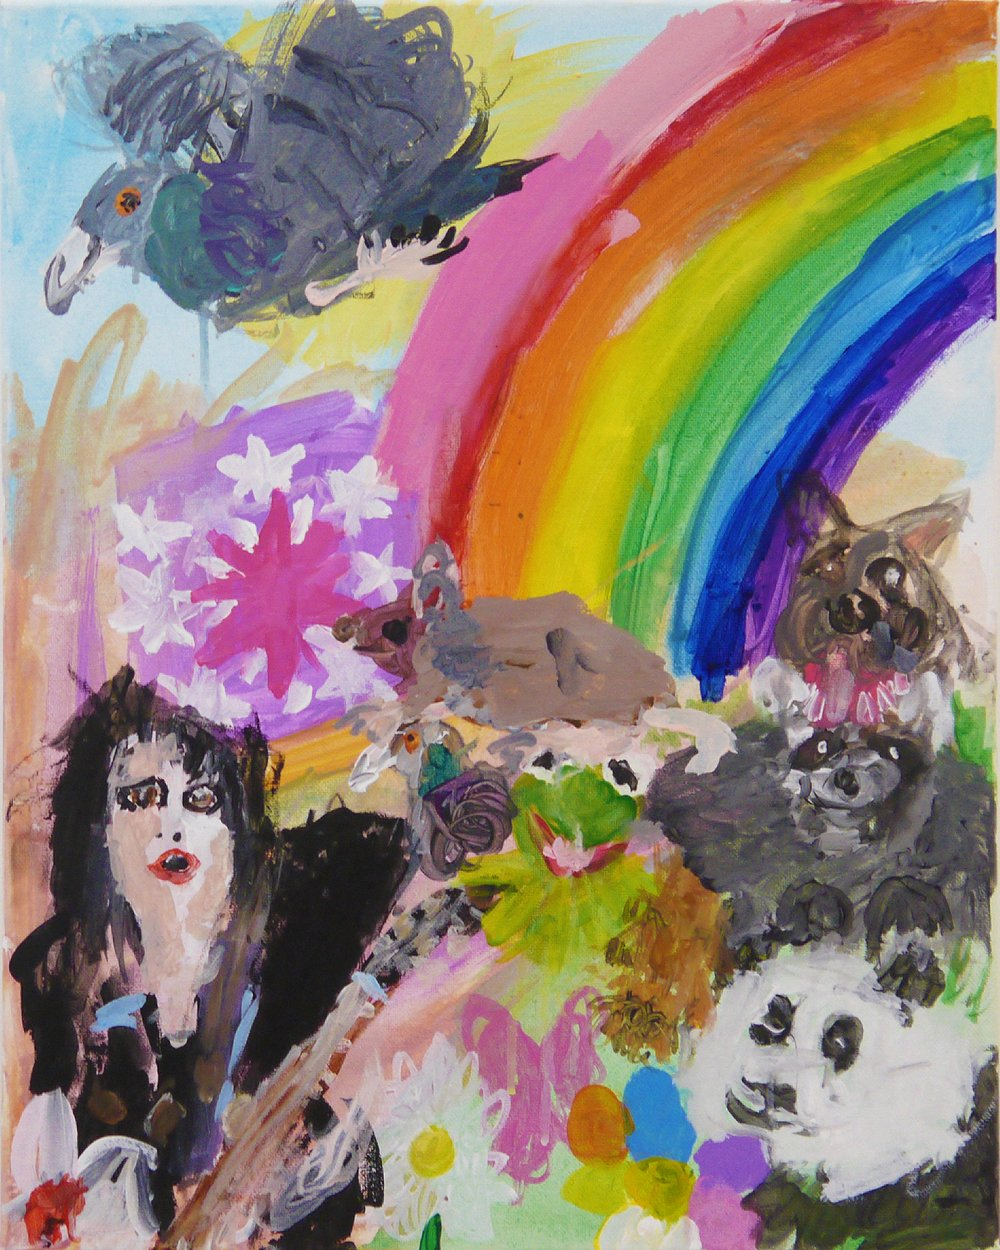 Joan Jett Makes a Rainbow - acrylic on canvas - 2018.jpg